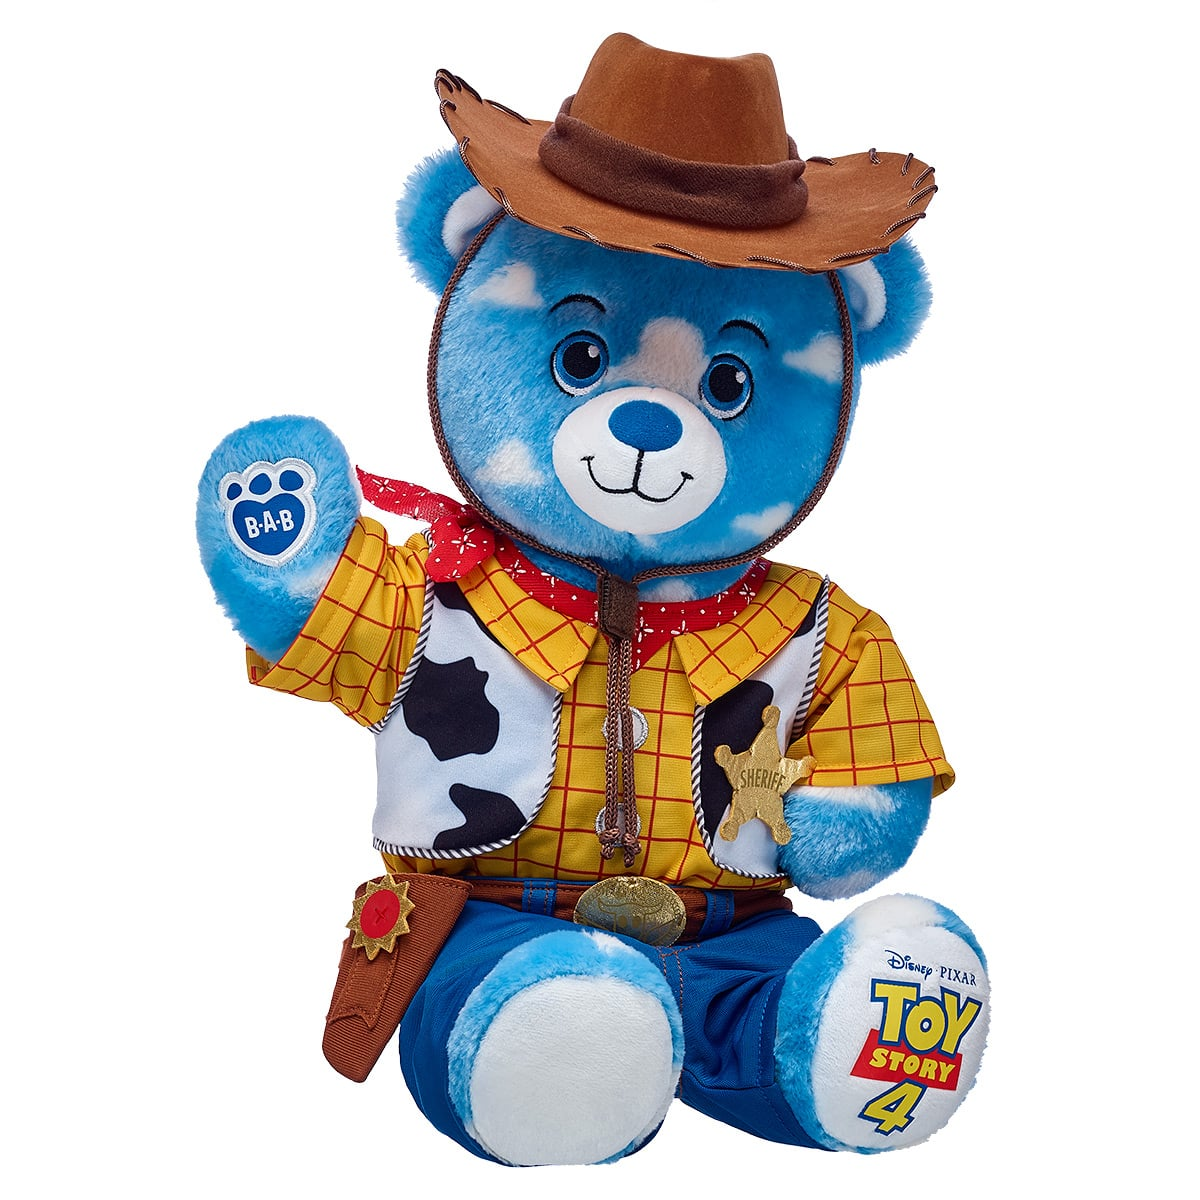 Toy Story 4 Build A Bear Collection Popsugar Family